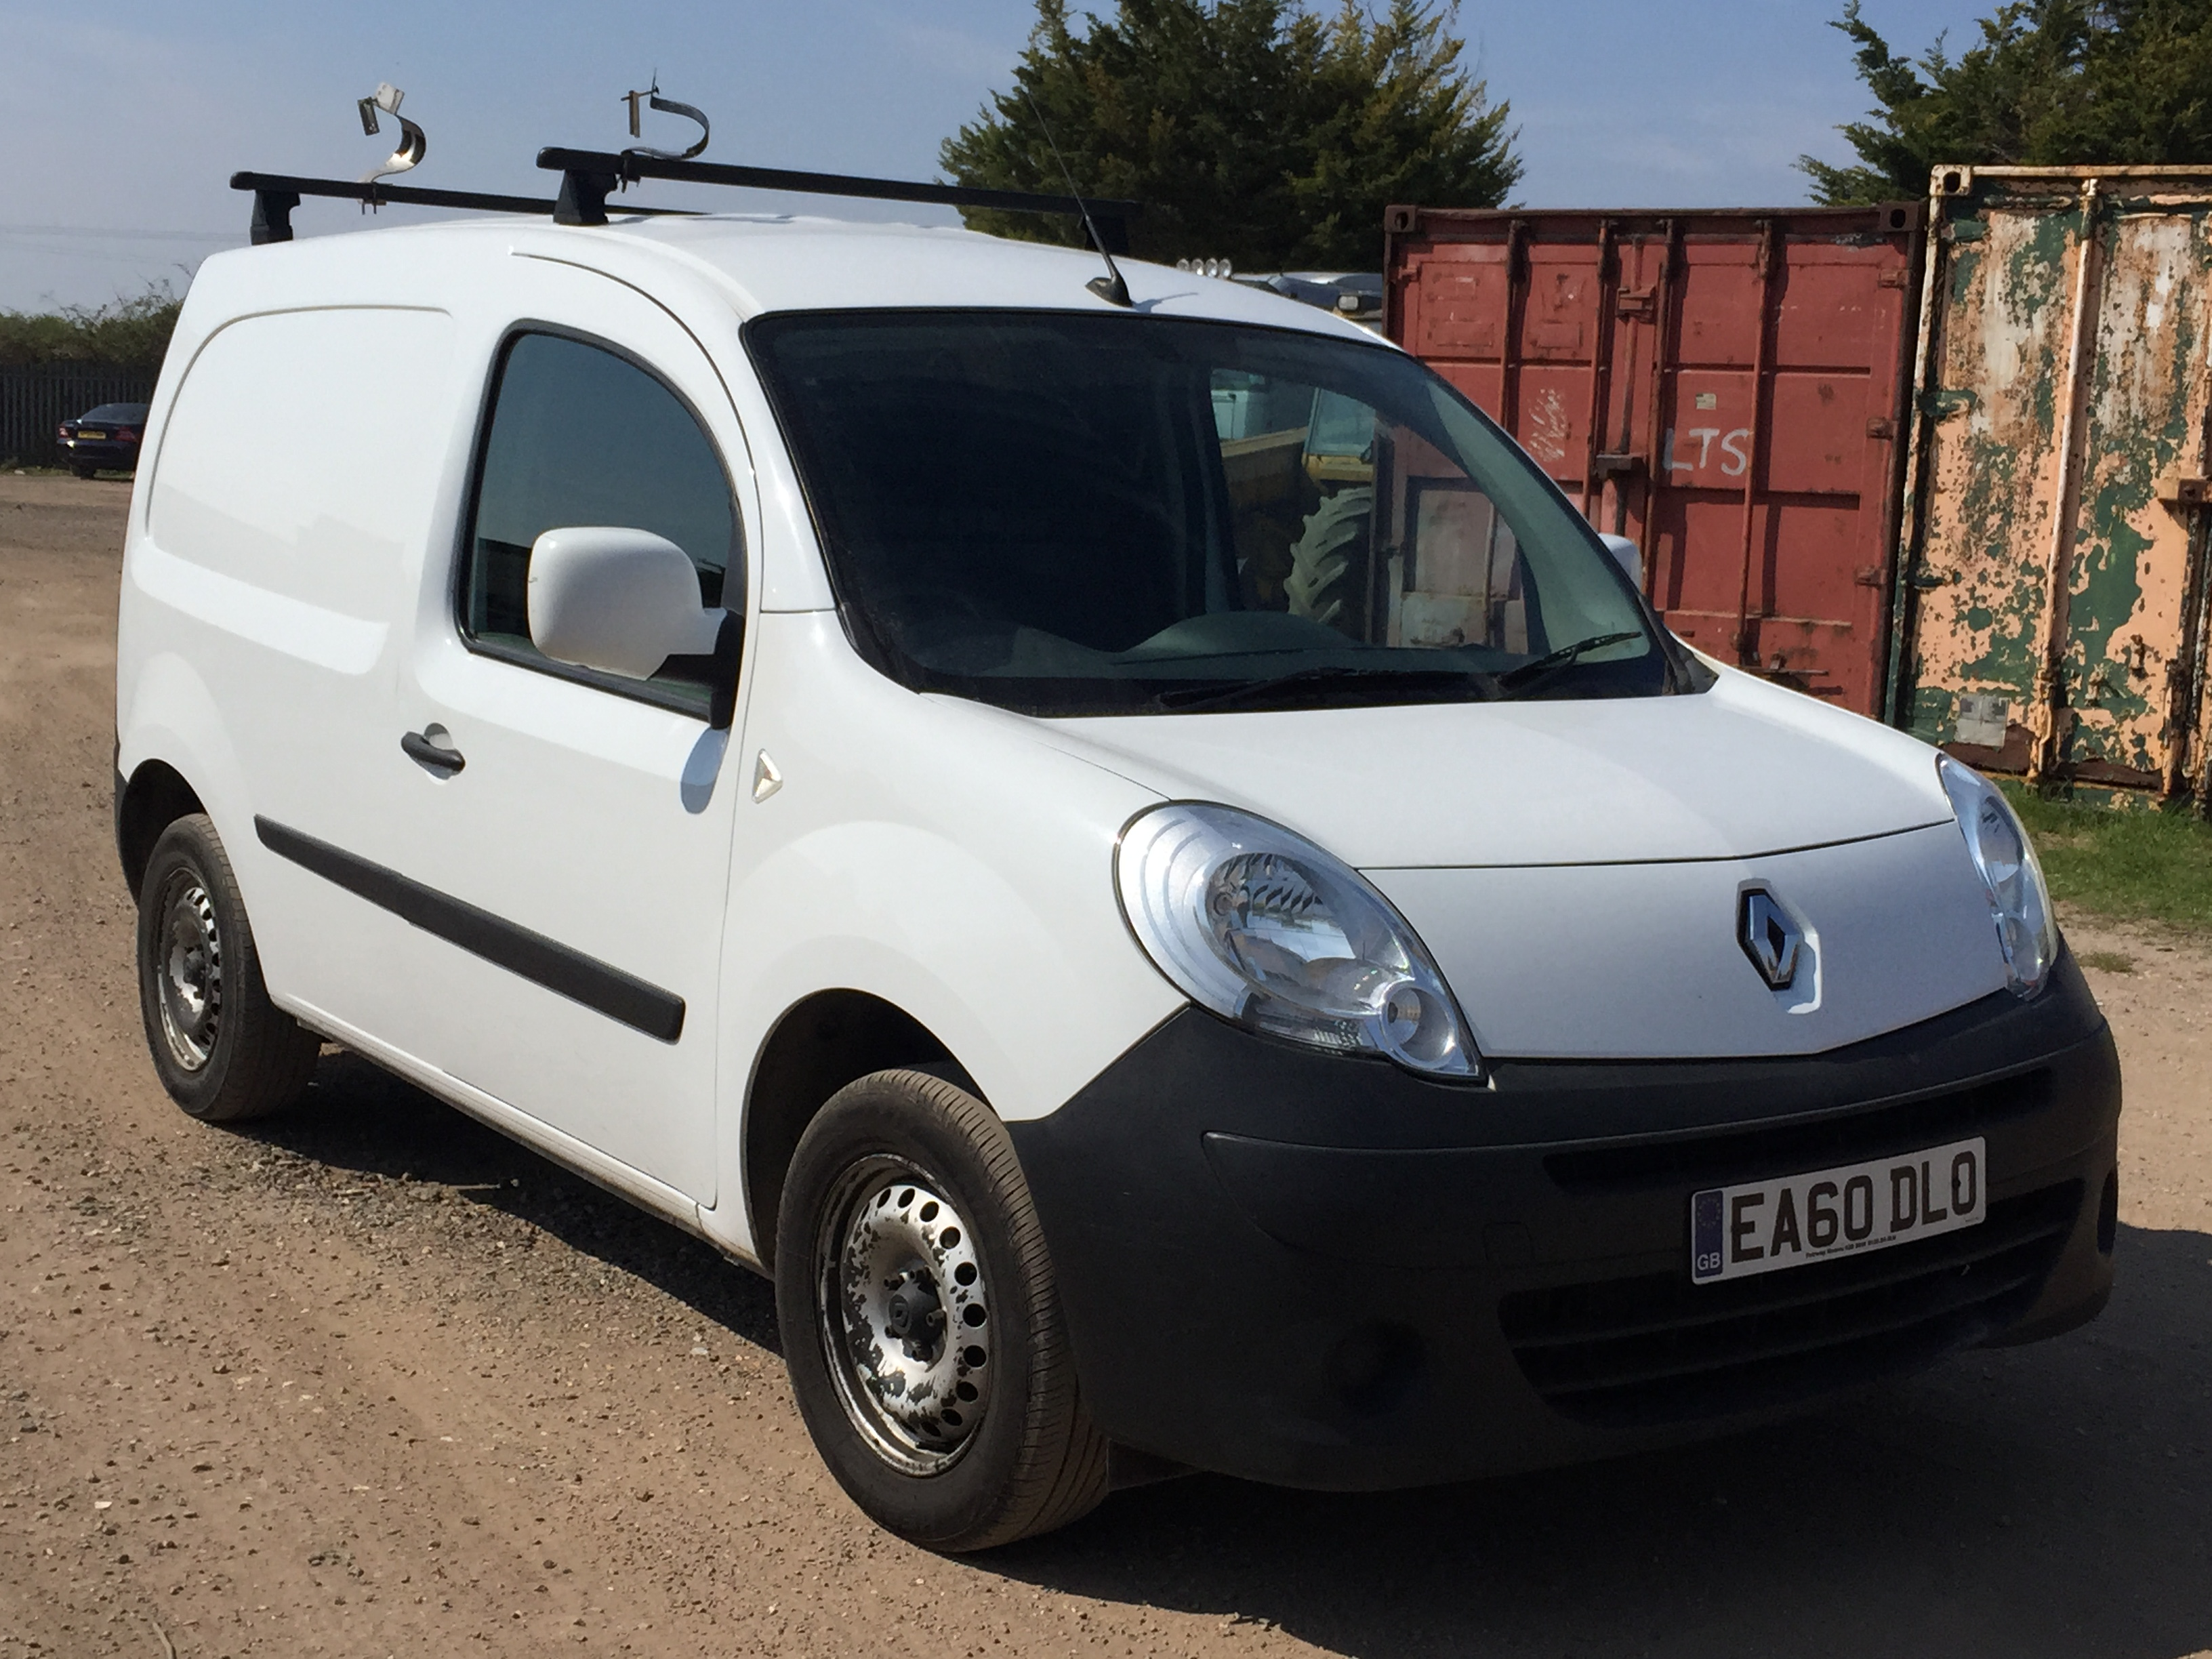 renault kangoo ml19 67 dci 1 5 manual 60 plate white reg ea60 dl0 1 5 ltr ma. Black Bedroom Furniture Sets. Home Design Ideas